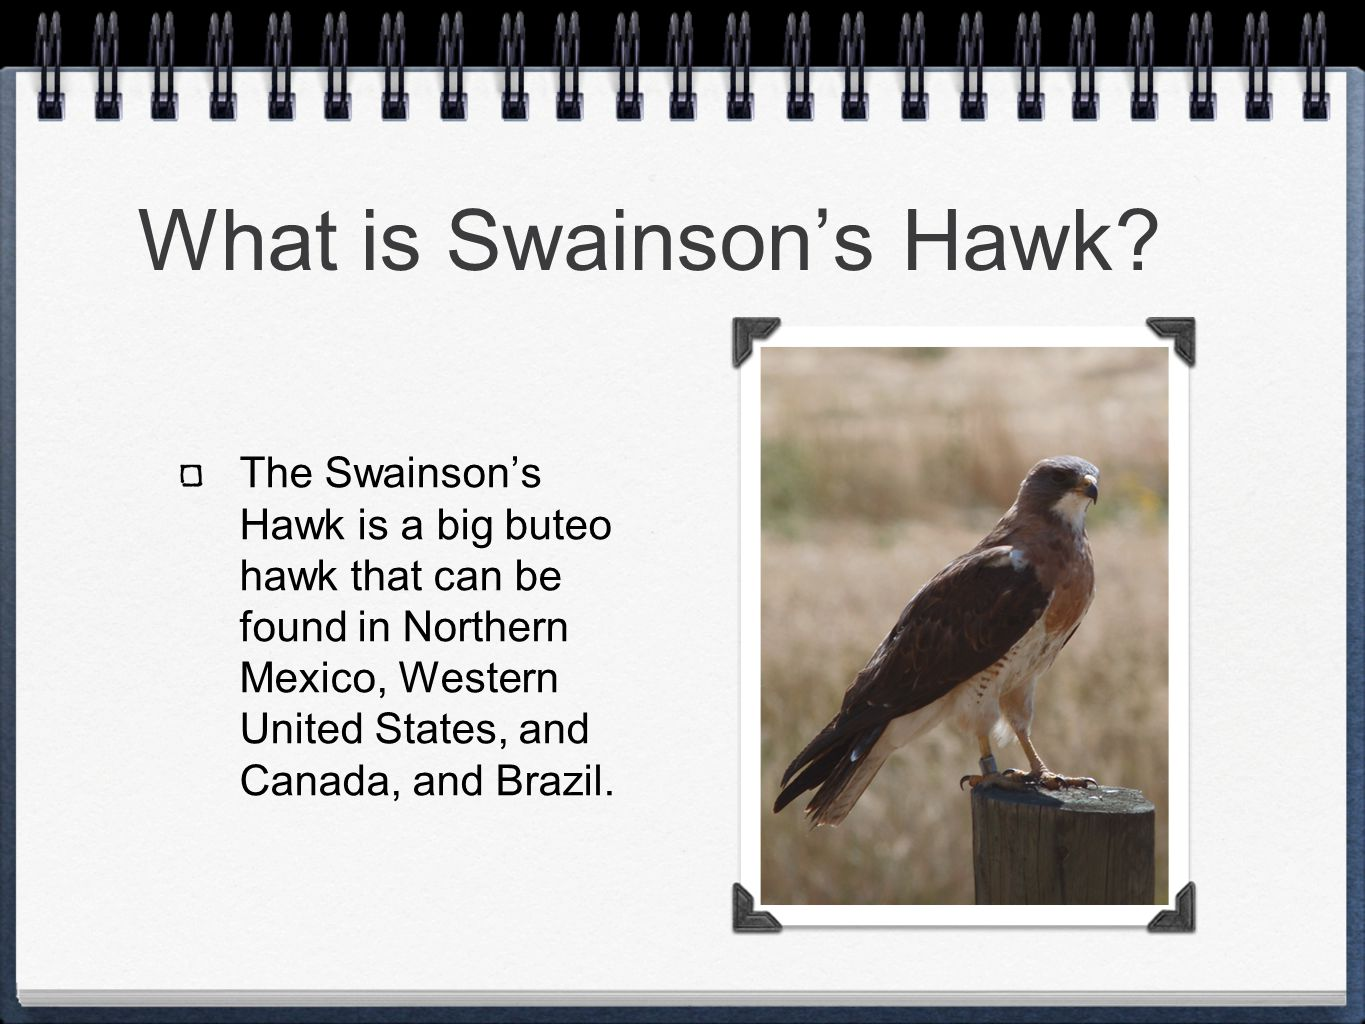 What is Swainson's Hawk? The Swainson's Hawk is a big buteo hawk that can be found in Northern Mexico, Western United States, and Canada, and Brazil.